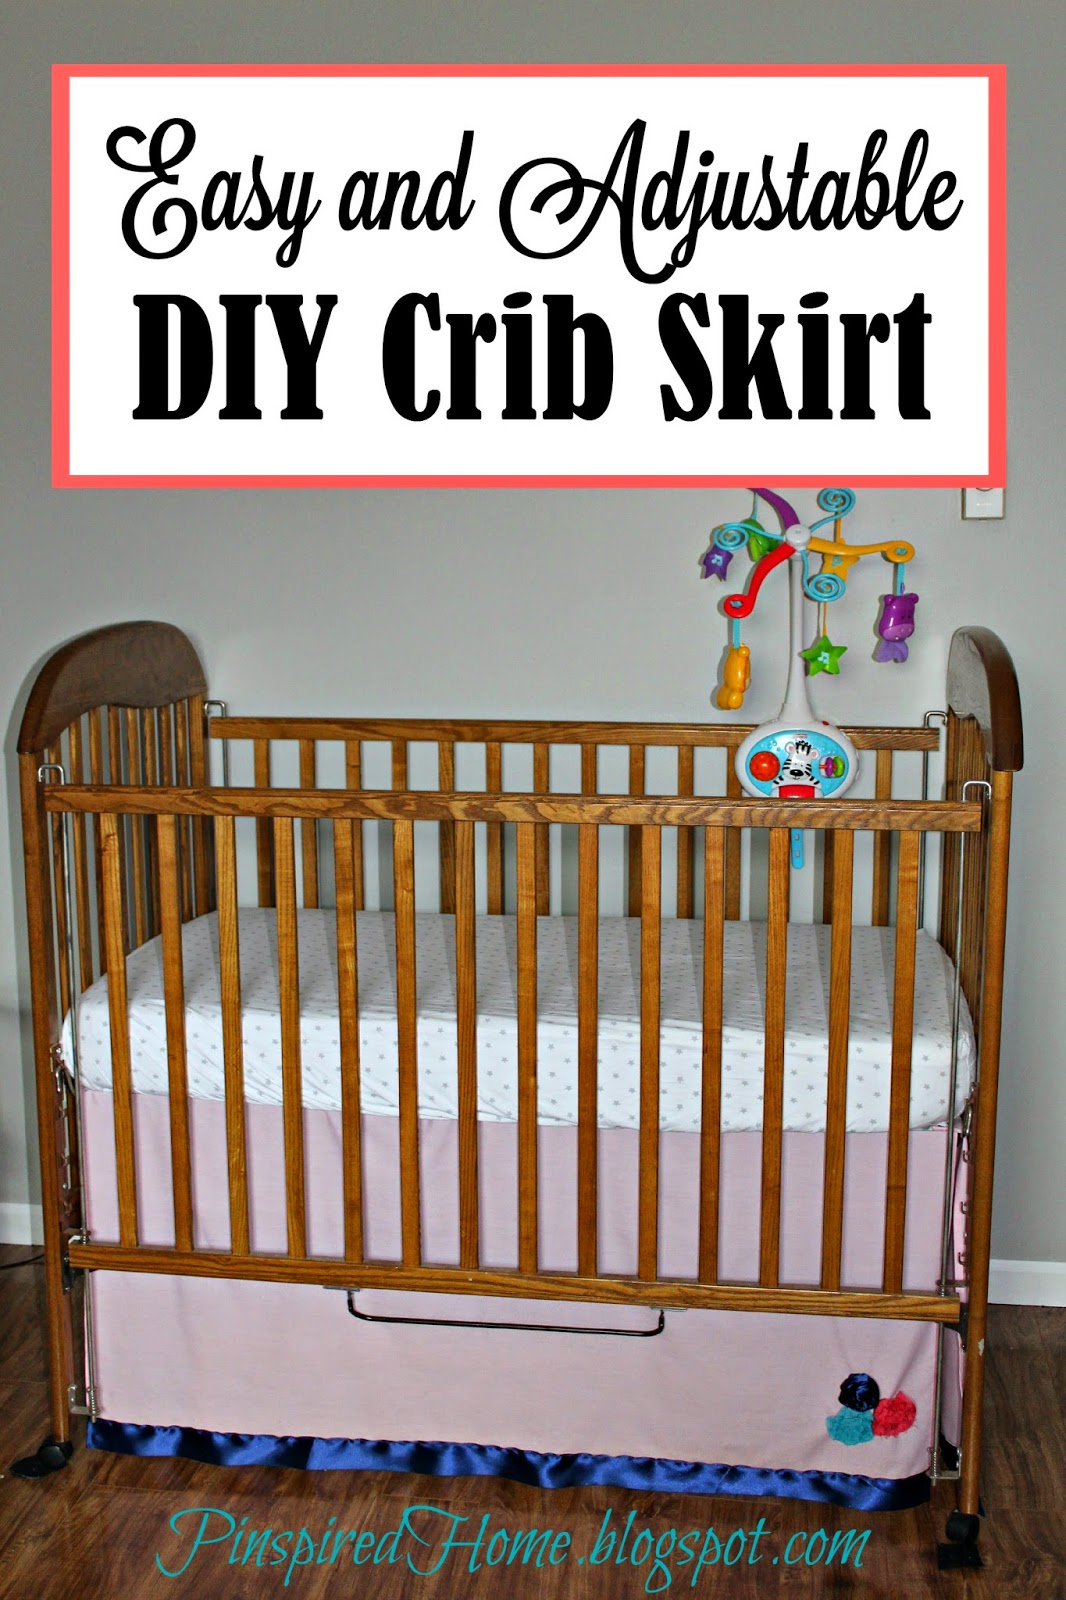 http://pinspiredhome.blogspot.com/2015/04/easy-and-adjustable-diy-crib-skirt.html